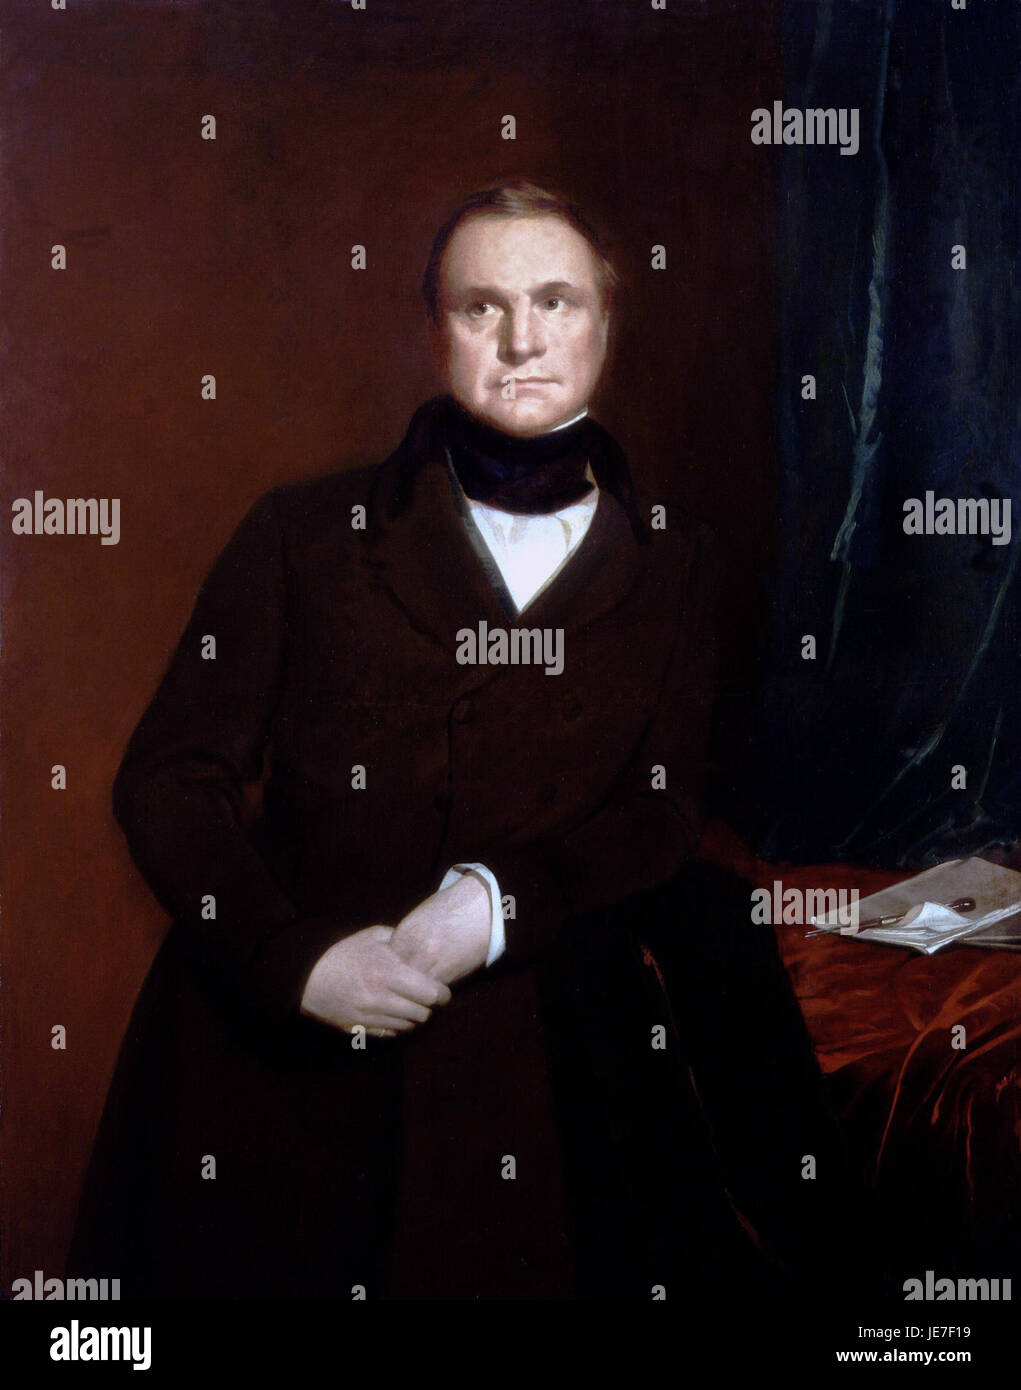 Charles Babbage by Samuel Laurence - Stock Image